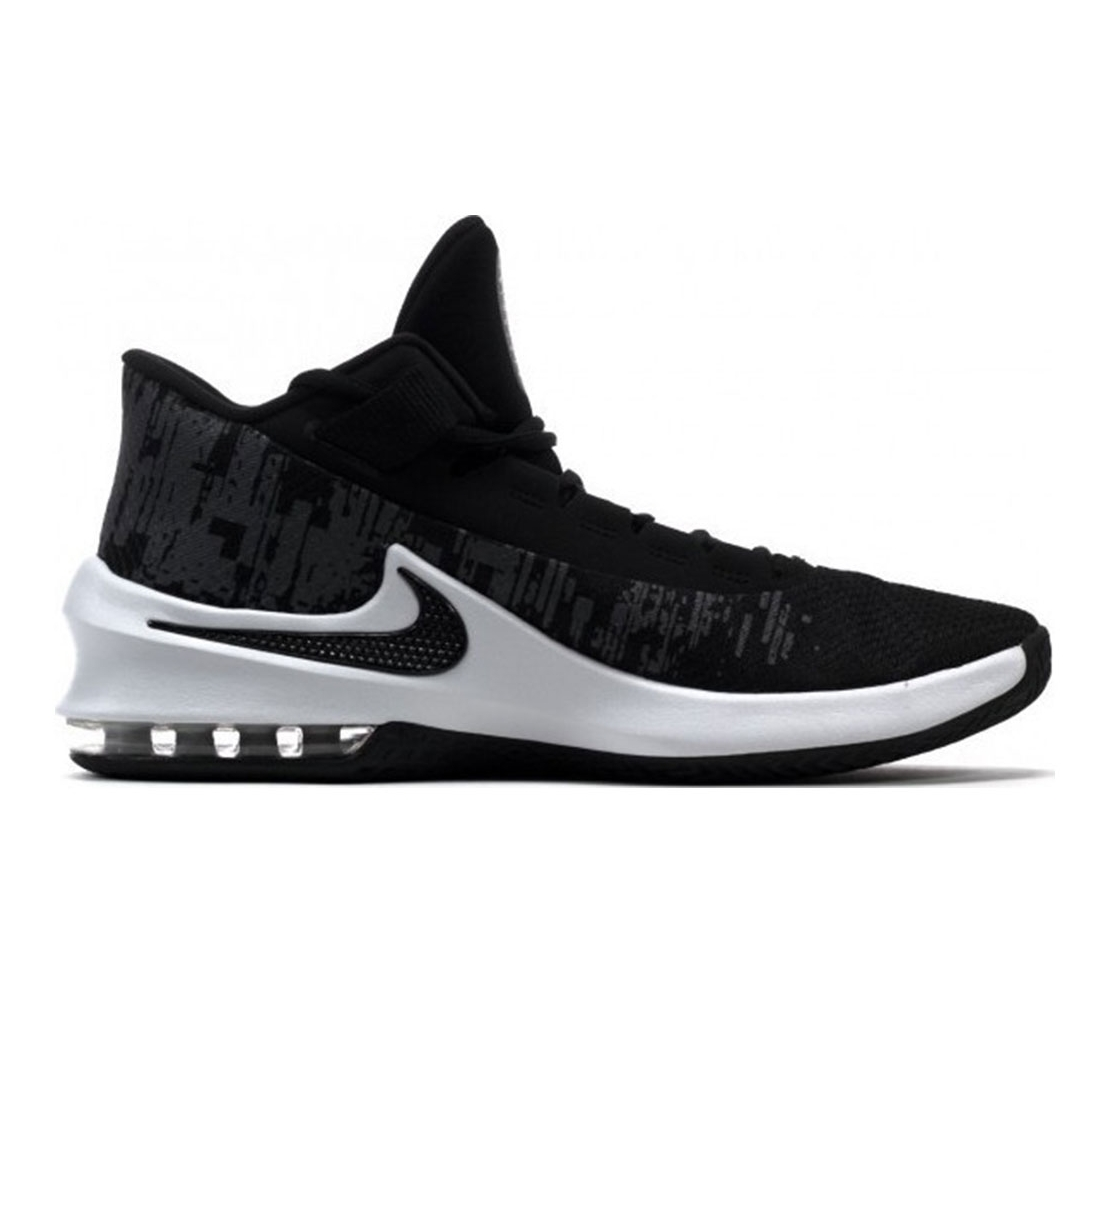 Nike Ανδρικό Παπούτσι Basket Fw18 Air Max Infuriate 2 Mid Aa7066